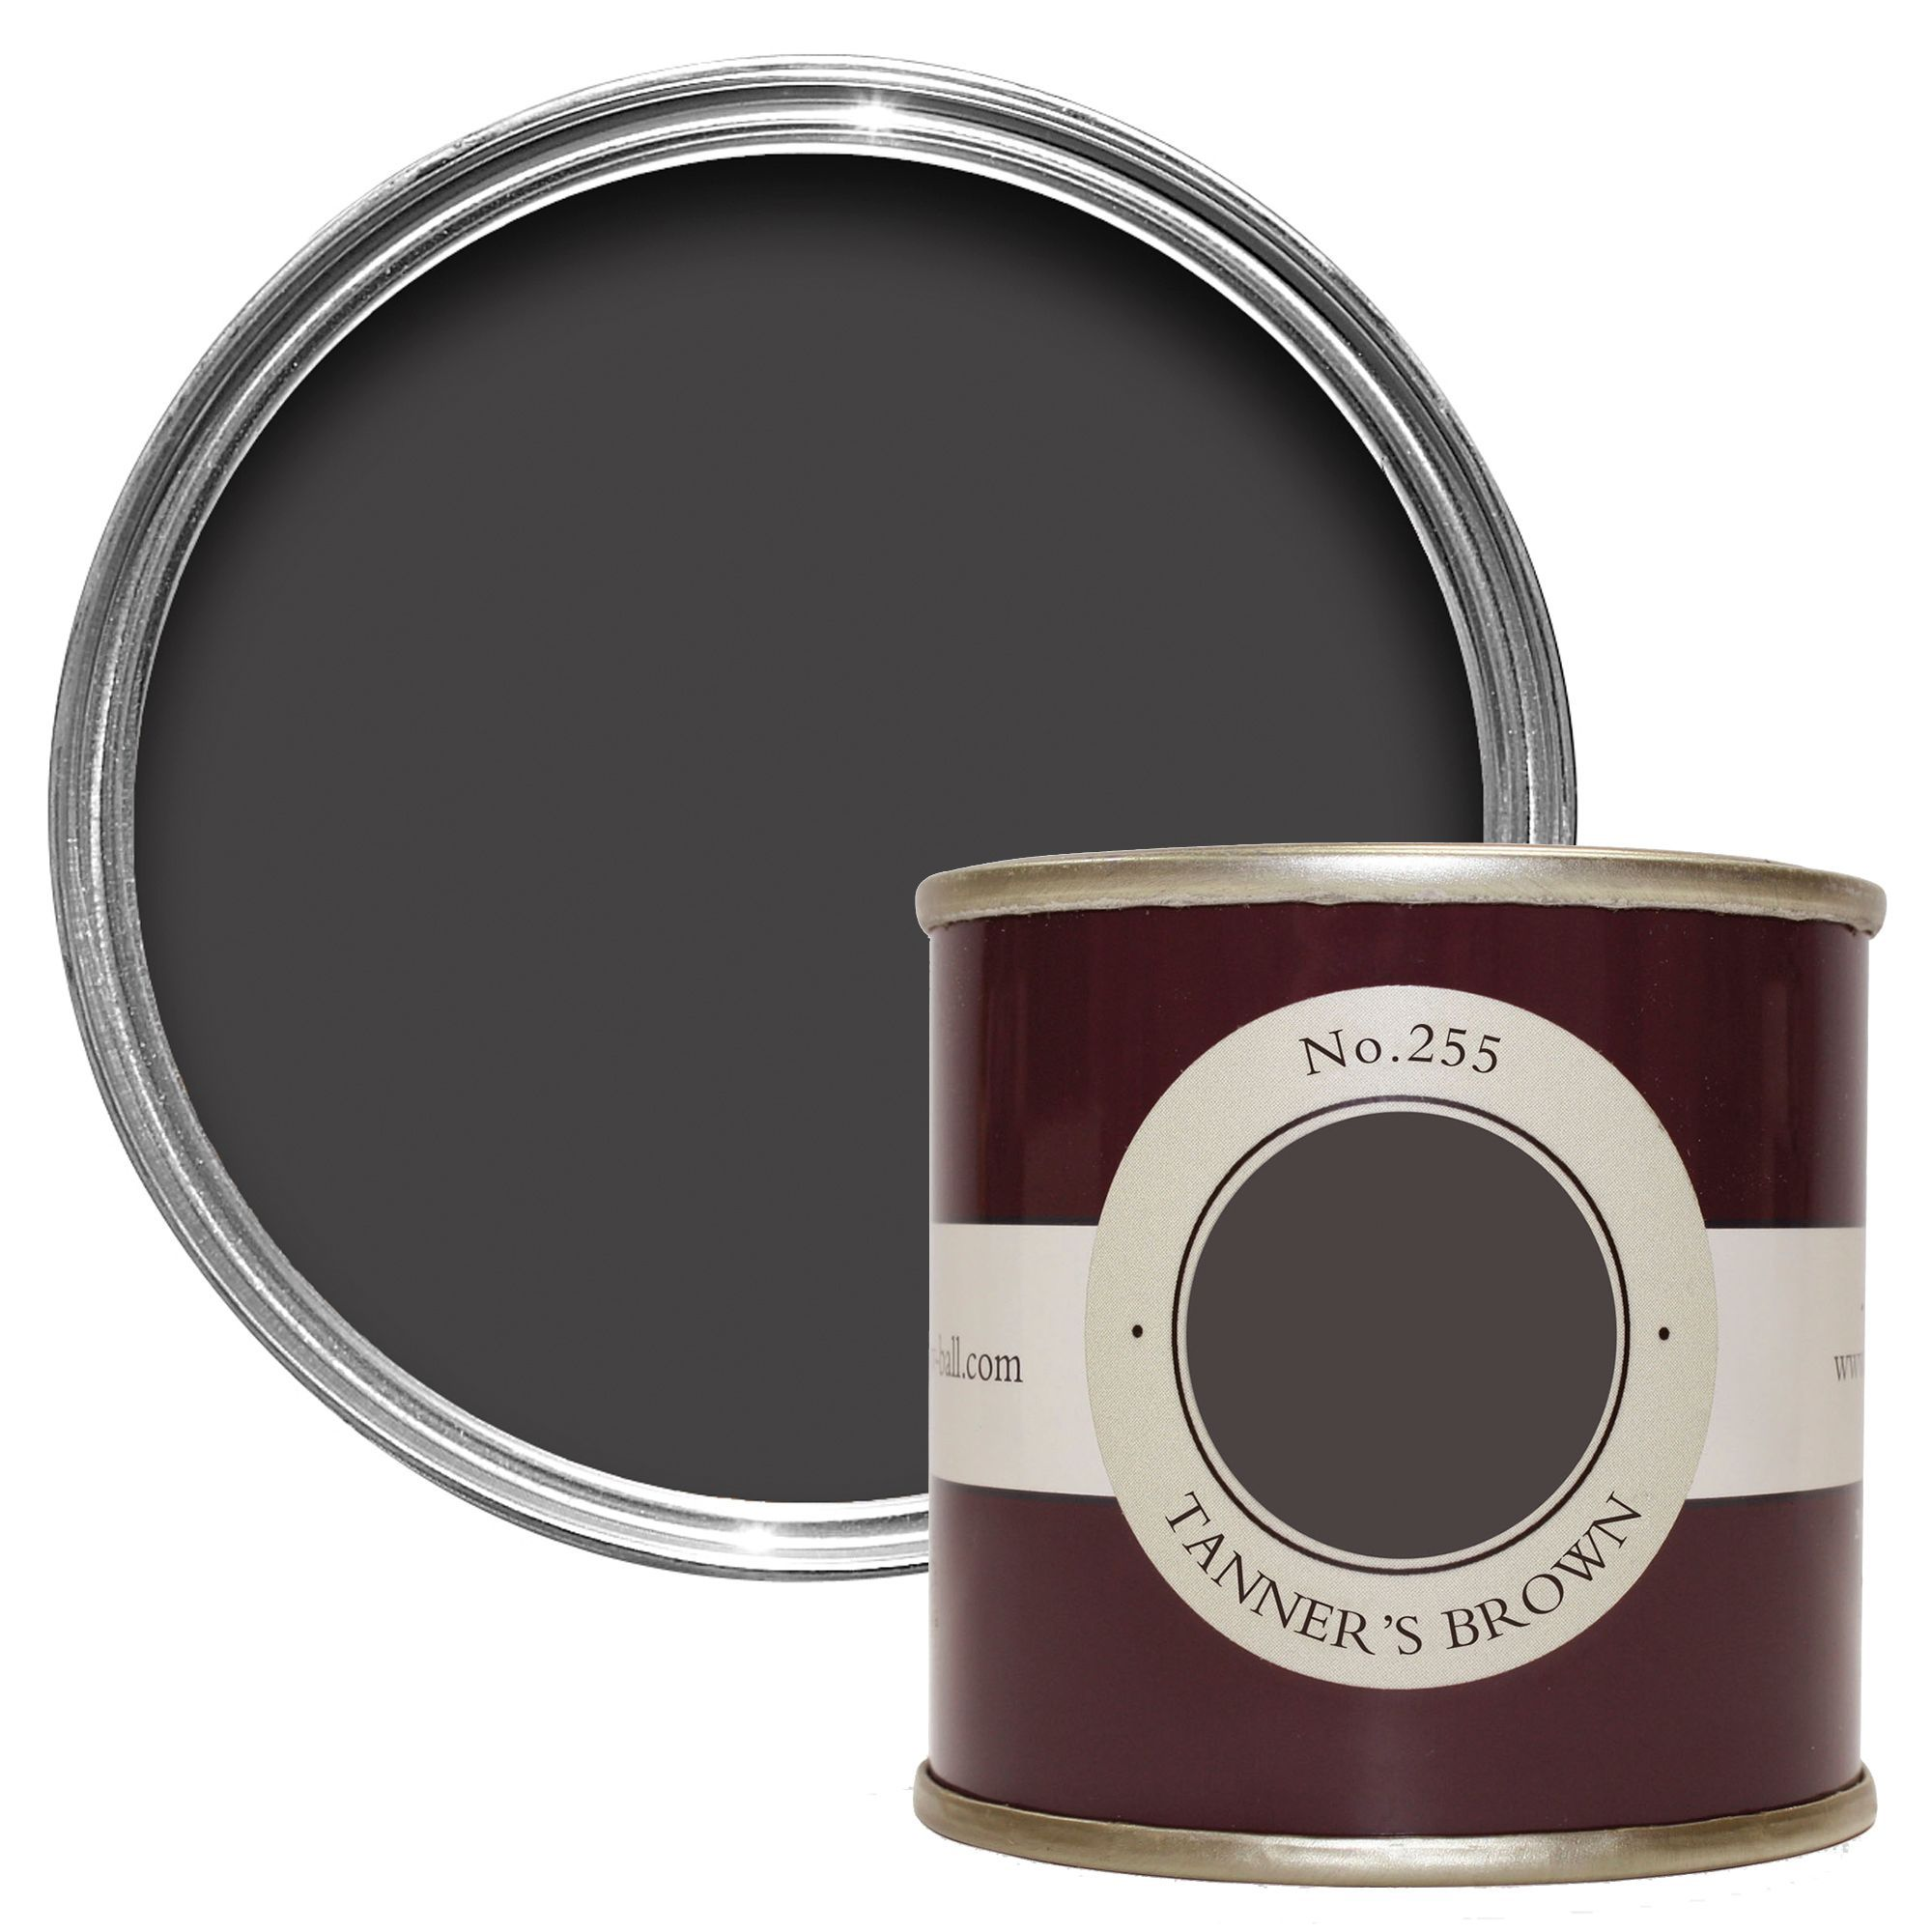 Farrow & Ball Tanners Brown no.255 Estate emulsion